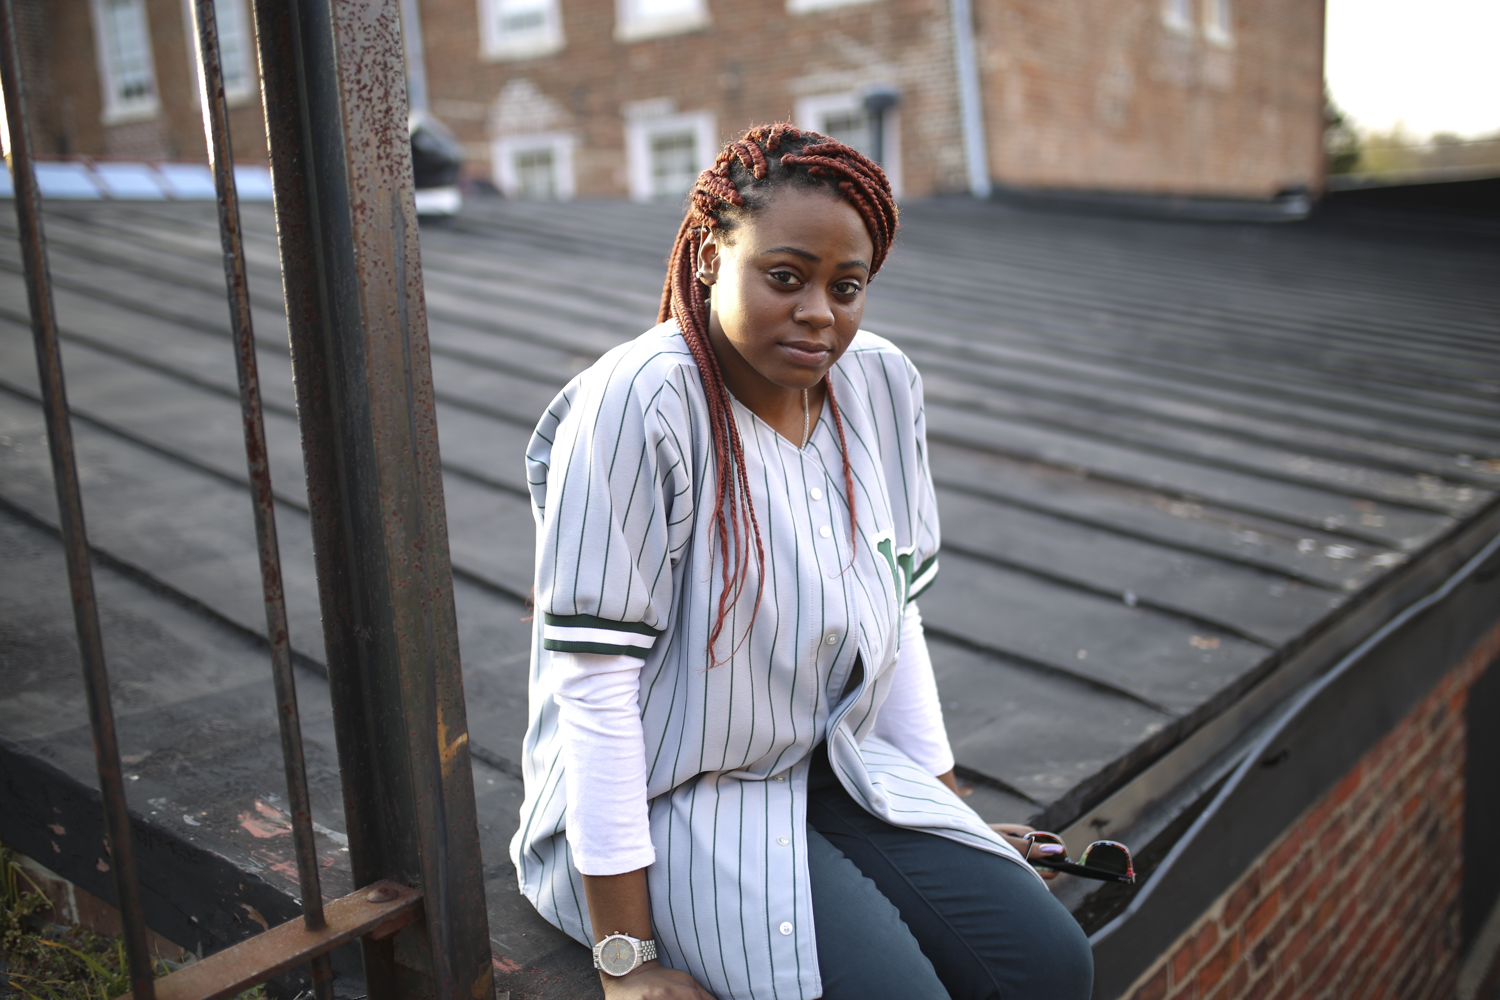 Neda Wright, a sophomore at Virginia State University, chats between poses while other VSU students, not pictured, conduct a photo shoot in the evening sun in an alleyway off E. Old Street in Petersburg on Tuesday, March 21, 2017. [Scott P. Yates/progress-index.com]